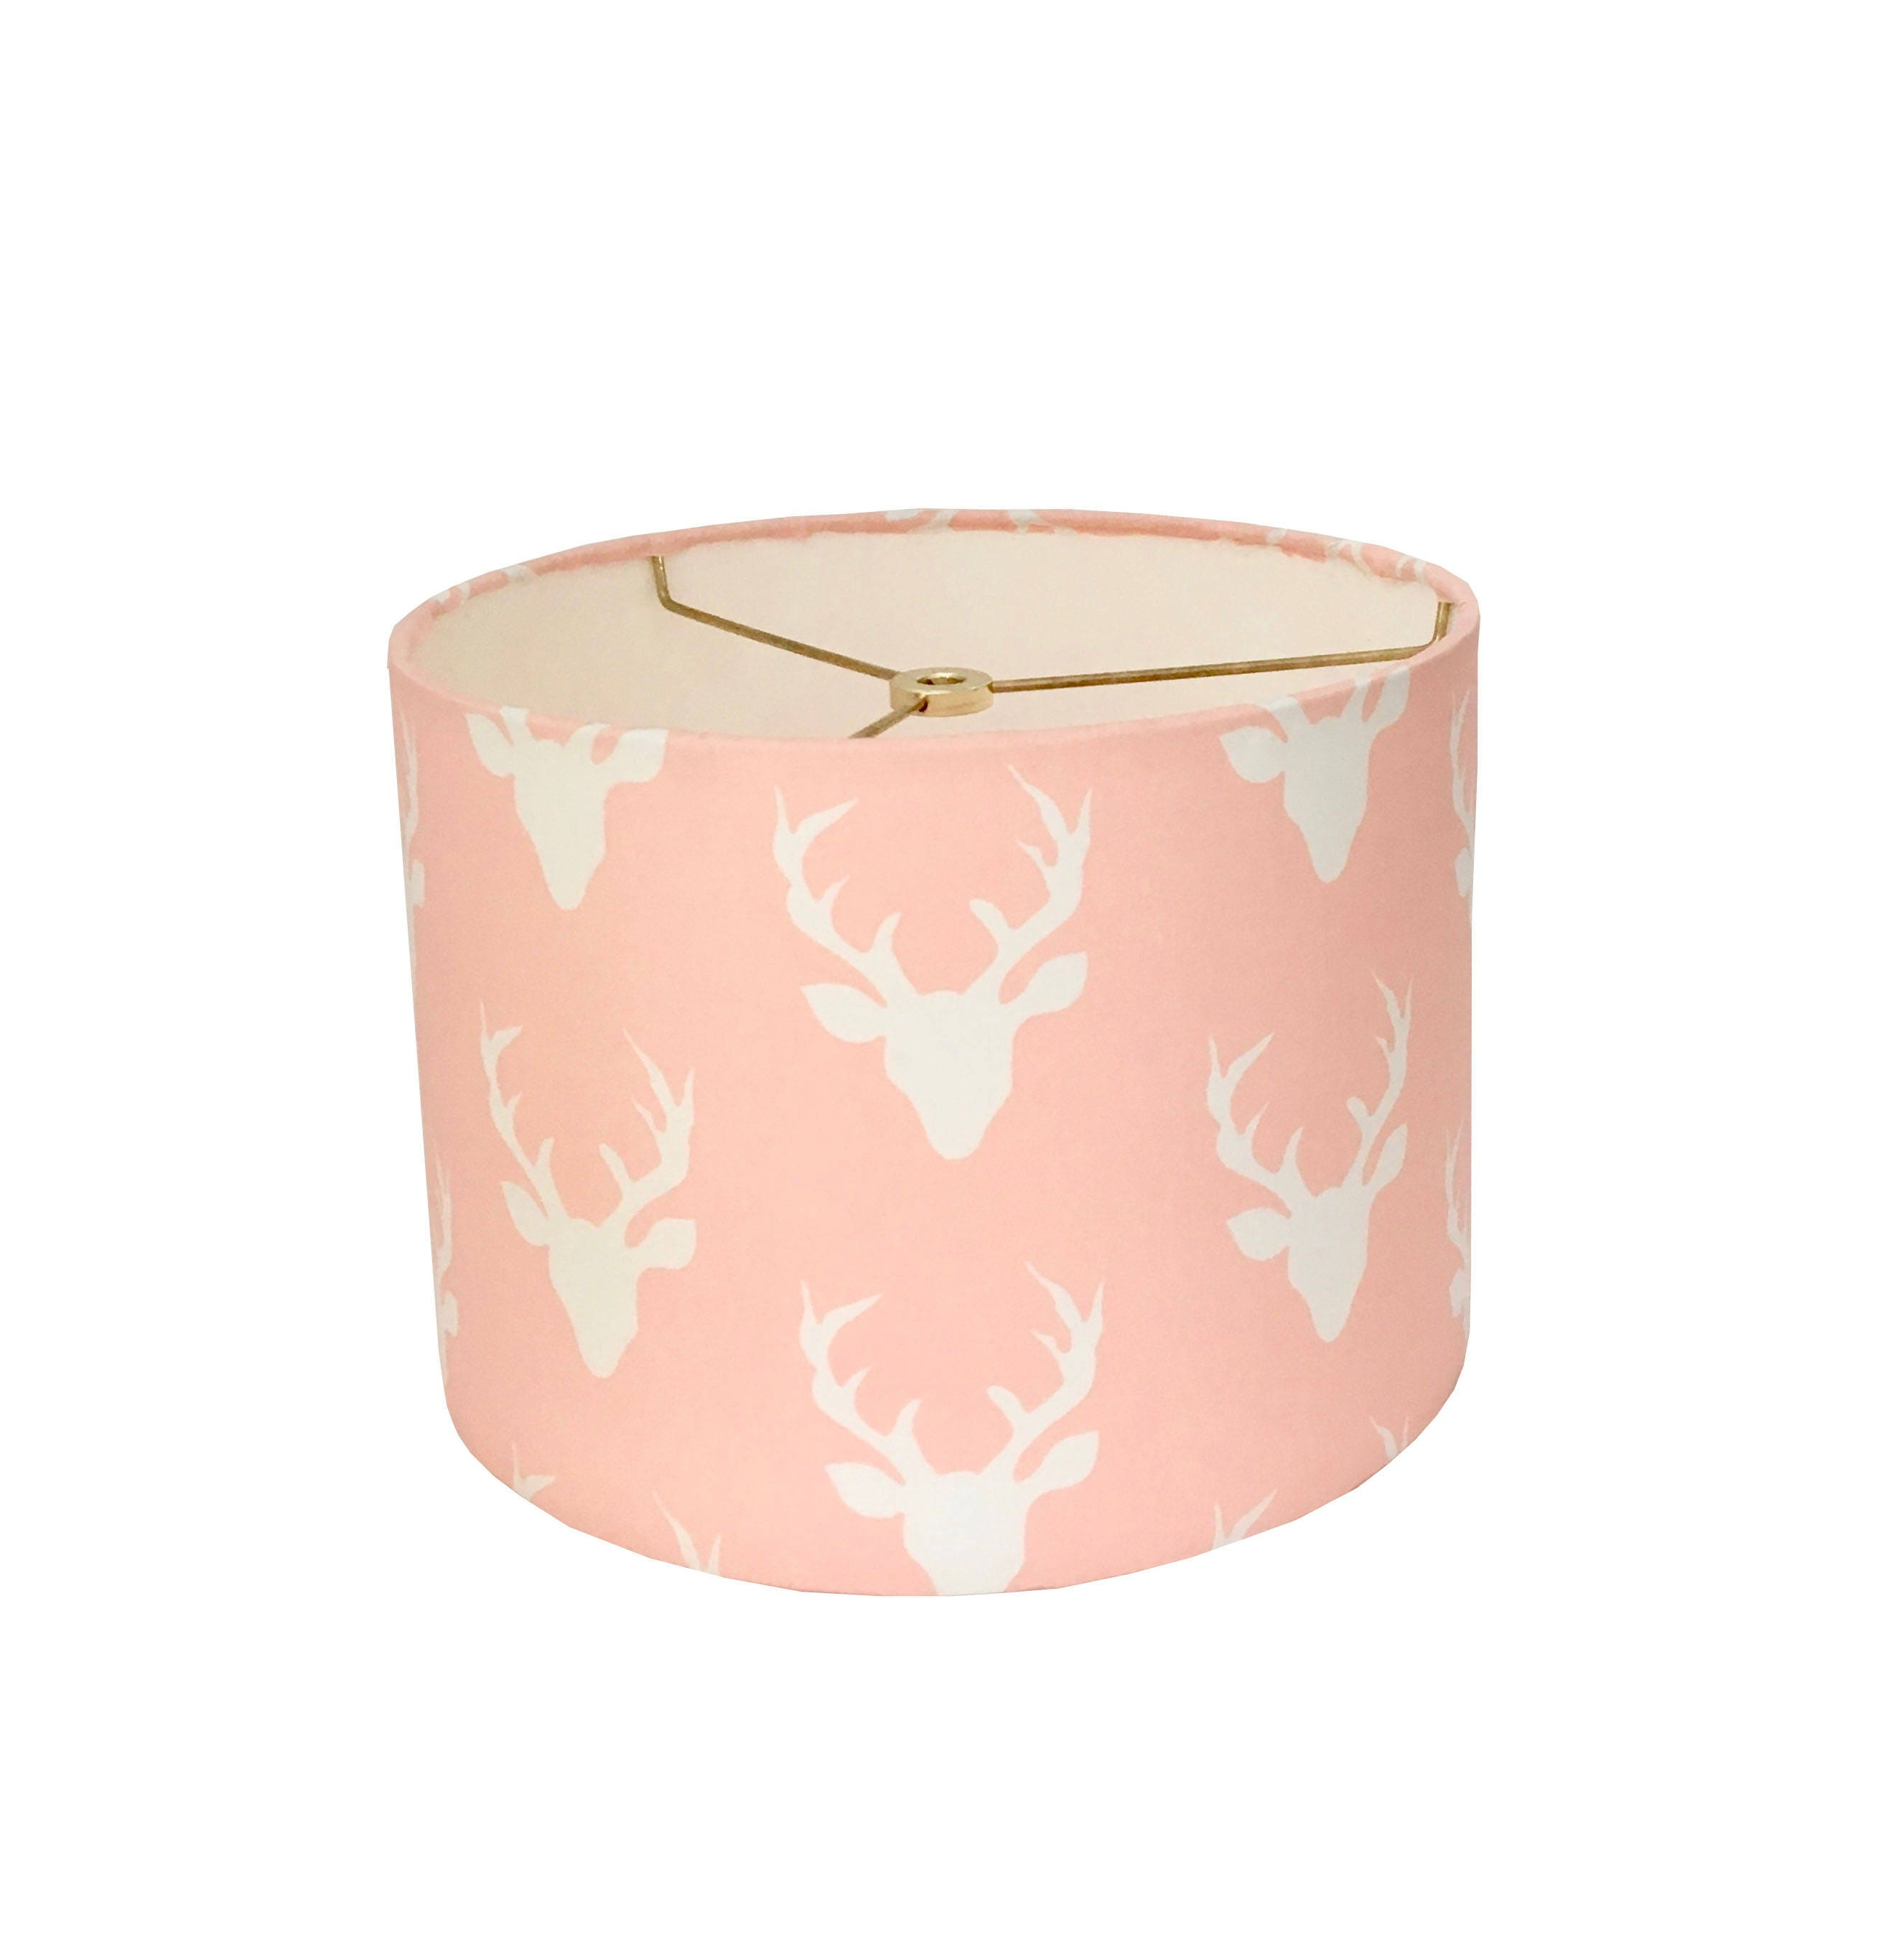 Drum lampshade woodland deer lamp shade kids room pink lamp shade drum lampshade woodland deer lamp shade kids room pink lamp shade nursery lampshade hello bear buck forest pink baby girl room table lamp aloadofball Images